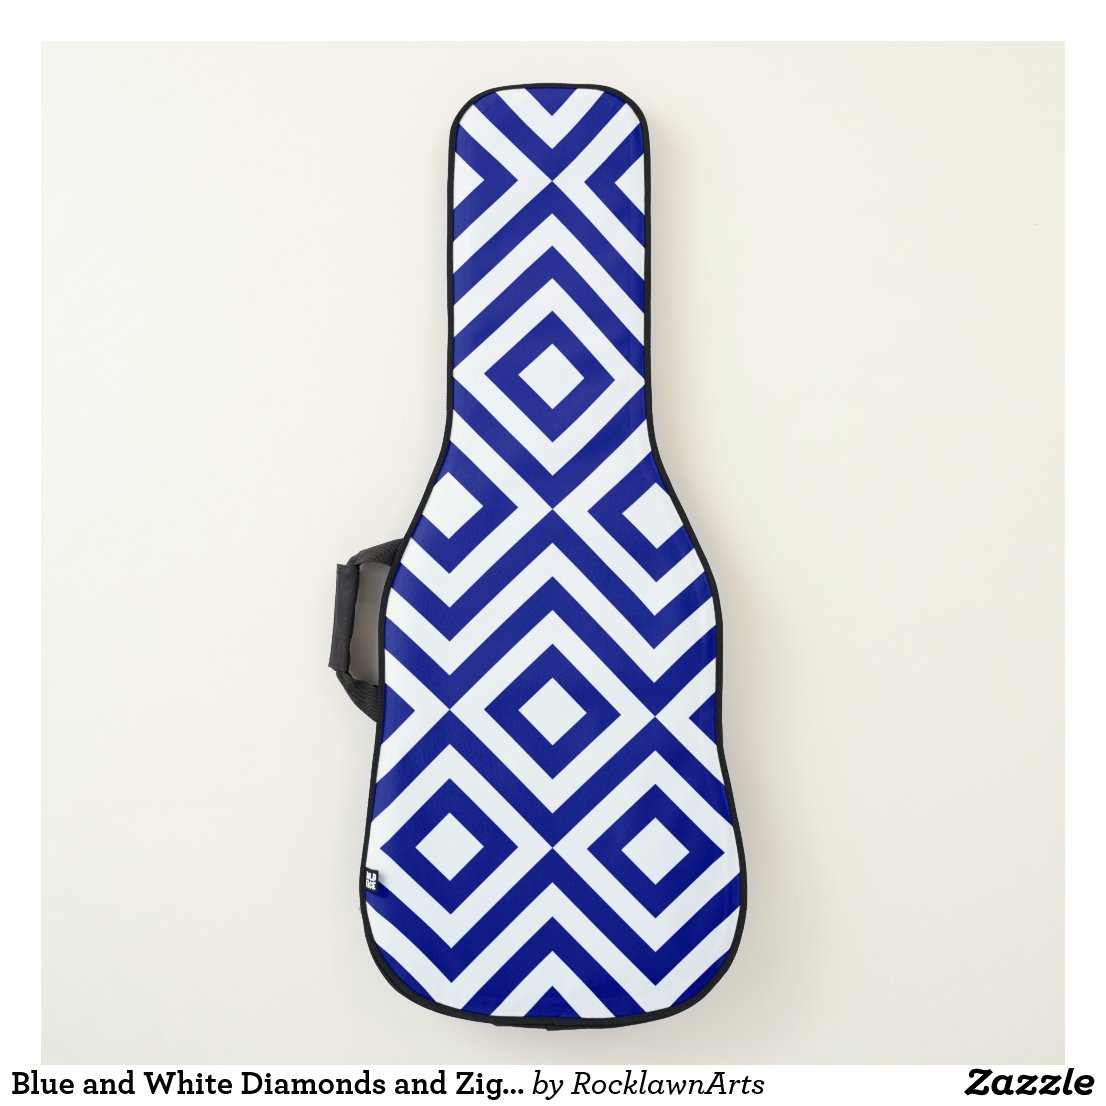 Blue and White Diamonds and Zigzags Guitar Case